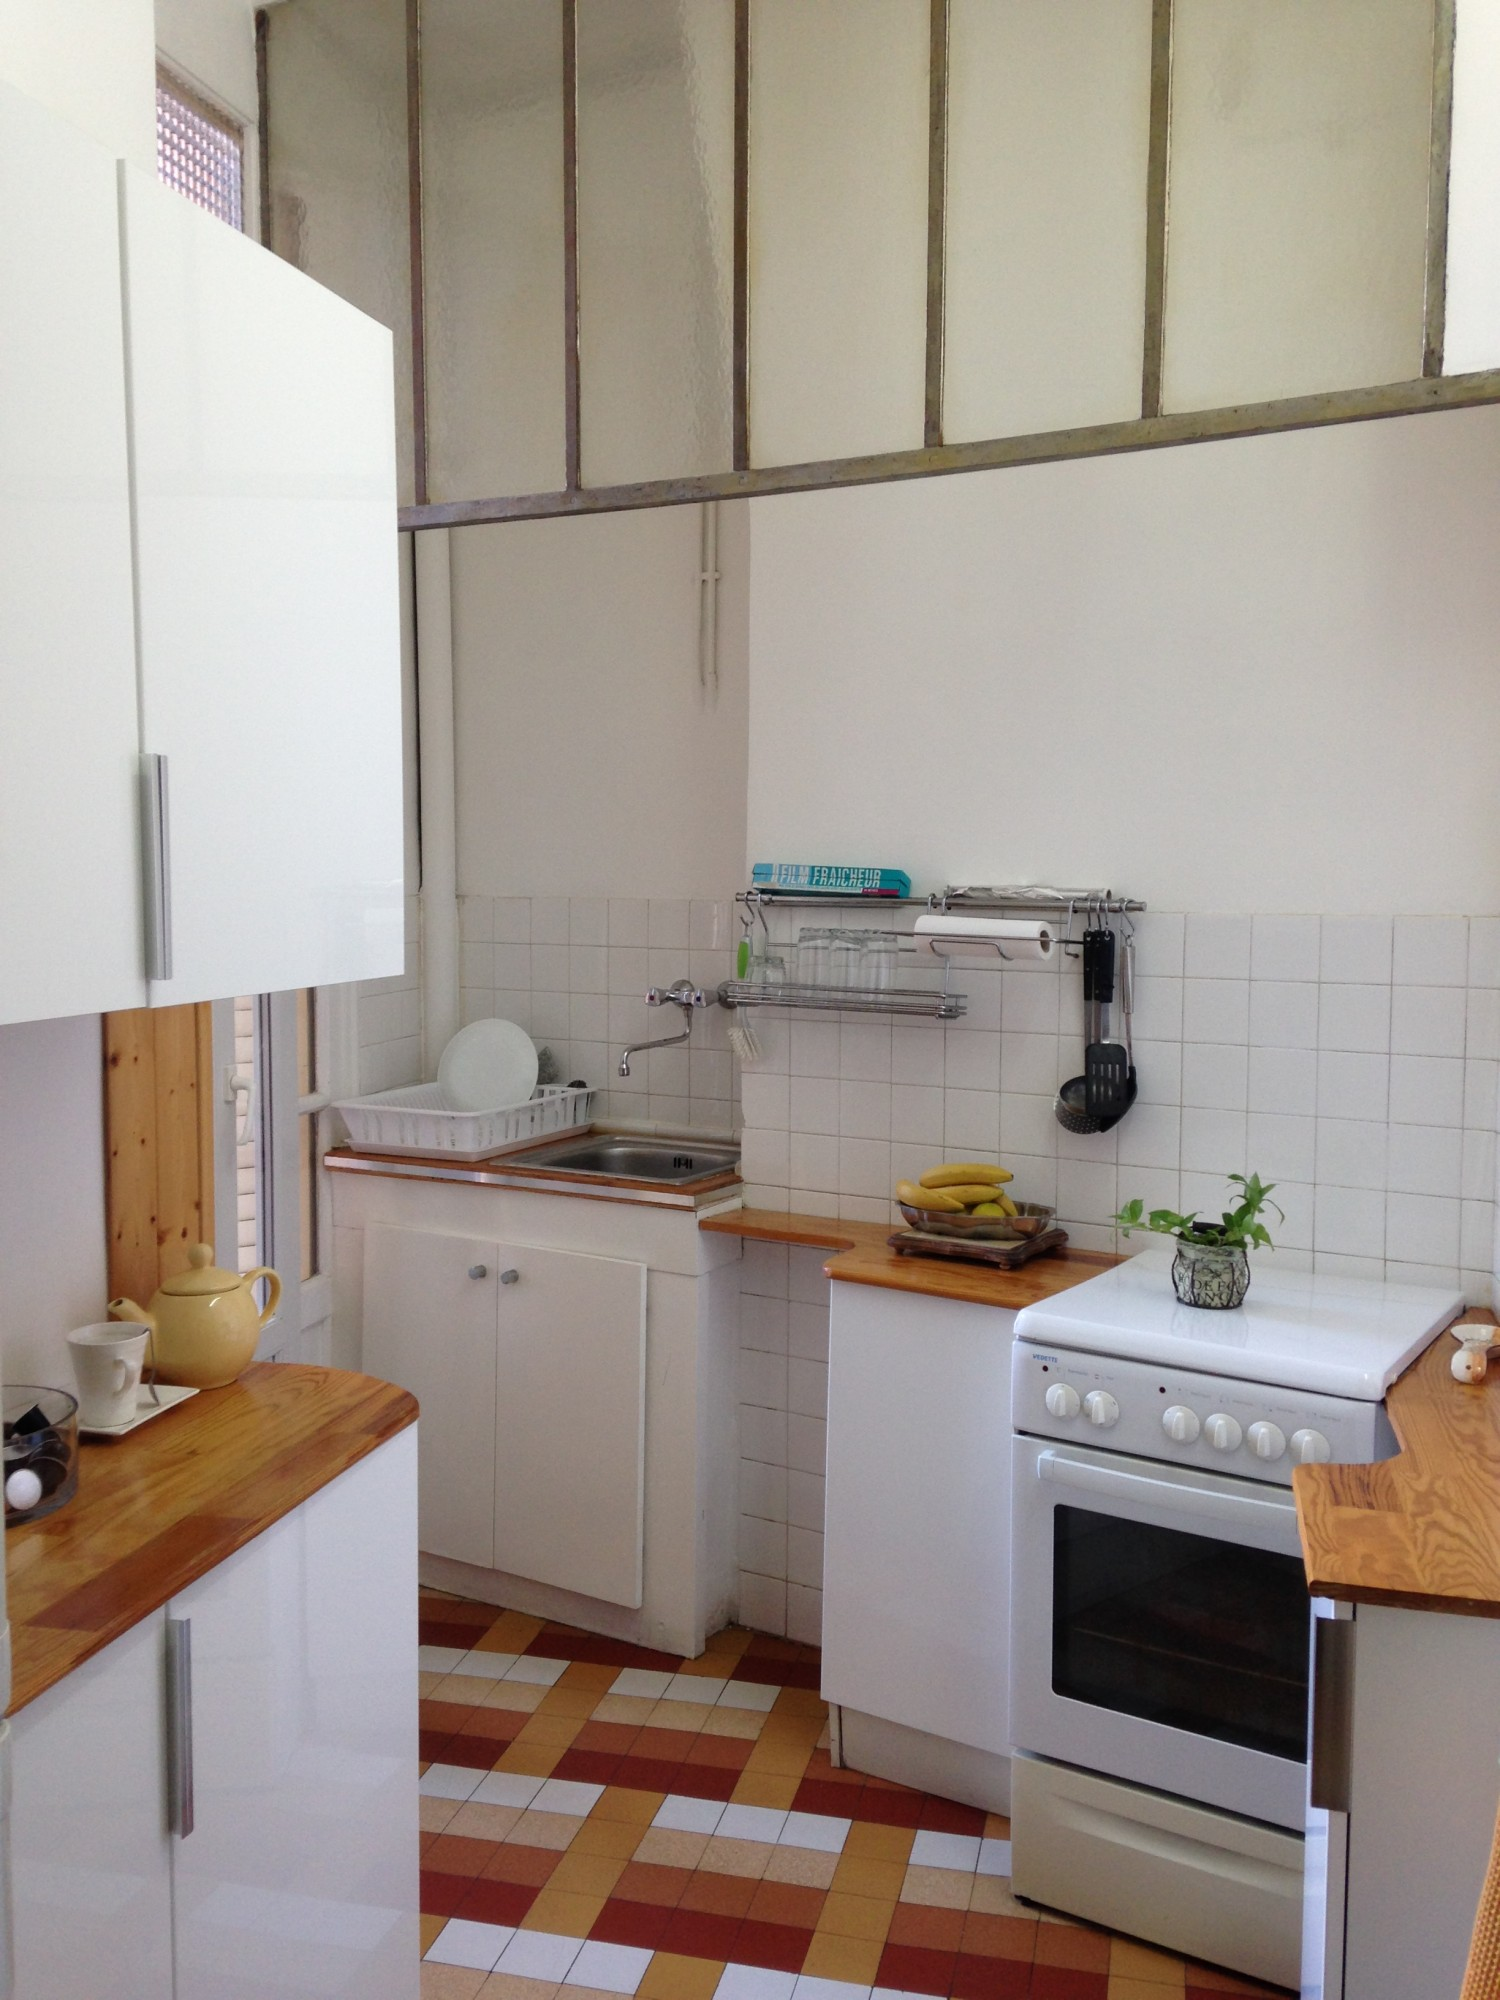 Location Chambre Marseille Locations Appartement T2 F2 13008 Quartier Du 1er Prado